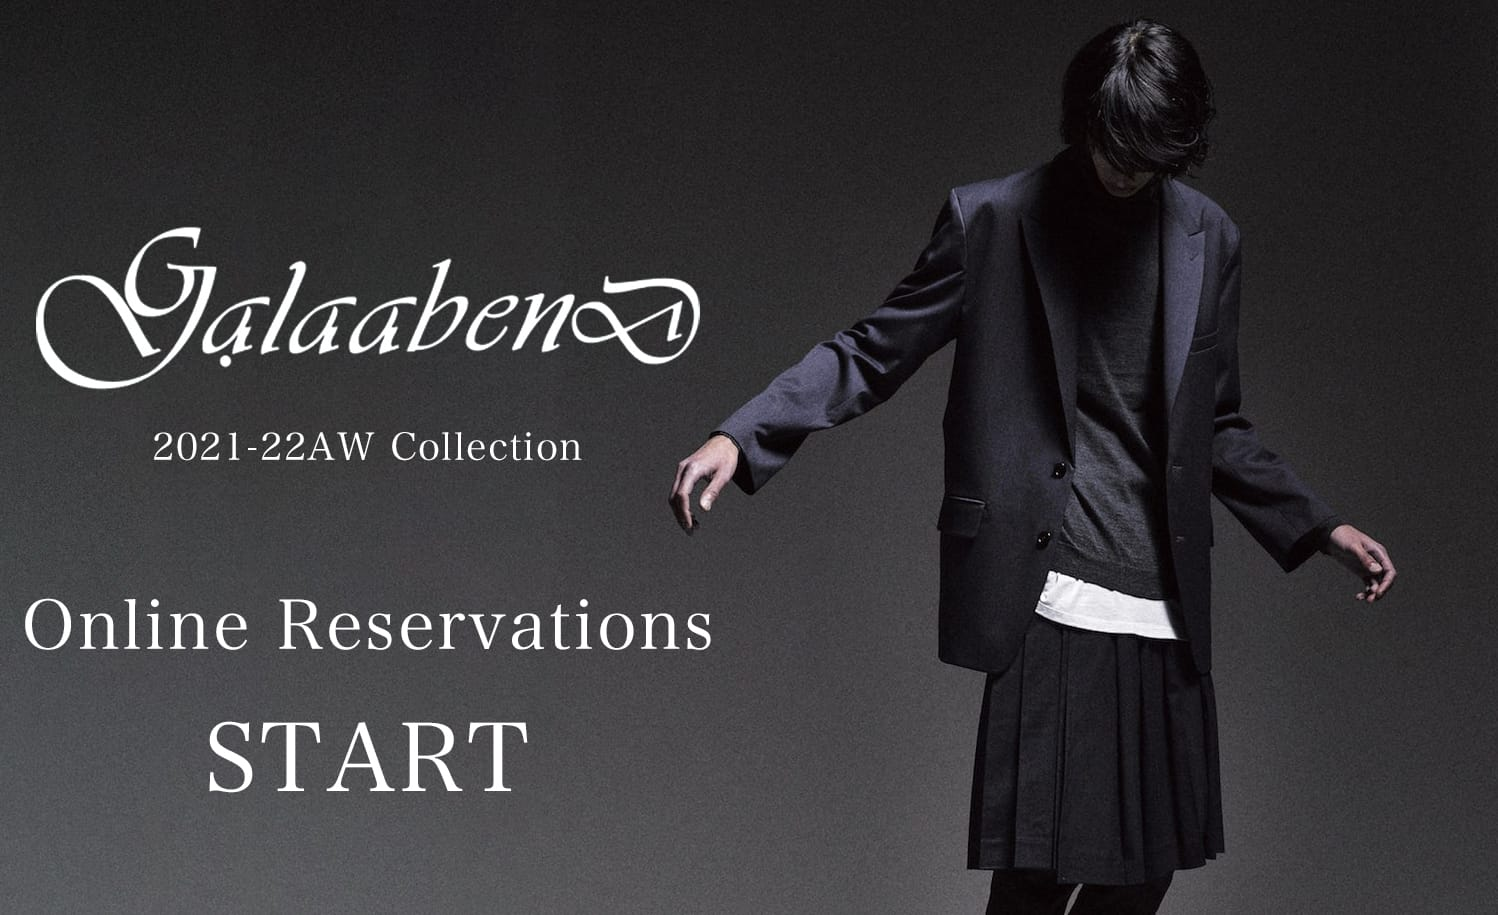 GalaabenD 21-22AW Collection Online Reservations